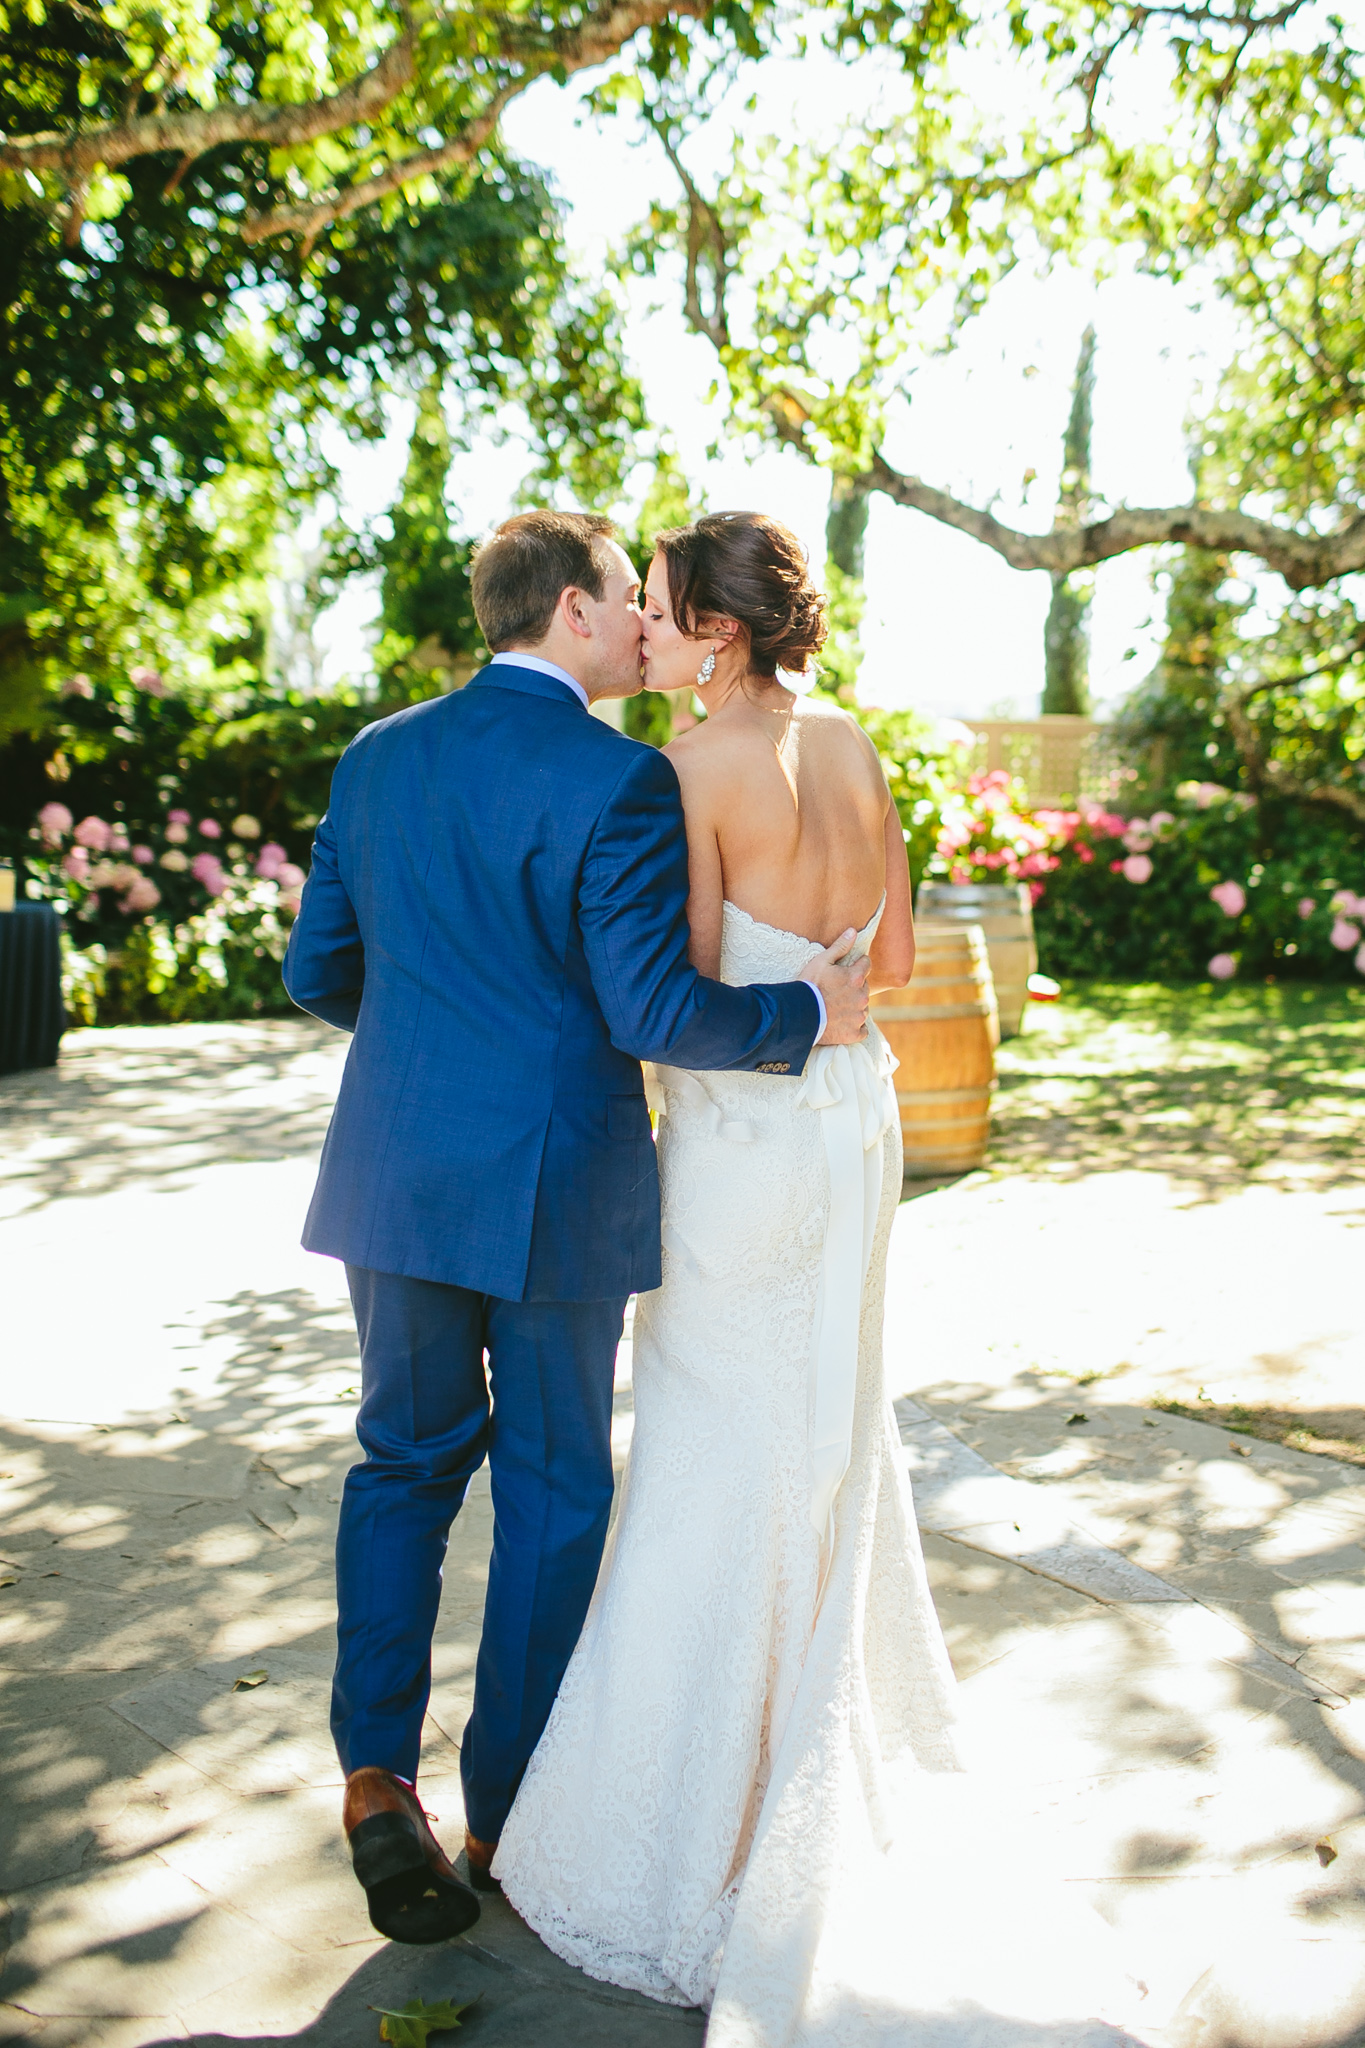 Kate+Taylor-BLOG-WED_KellyBoitano-84